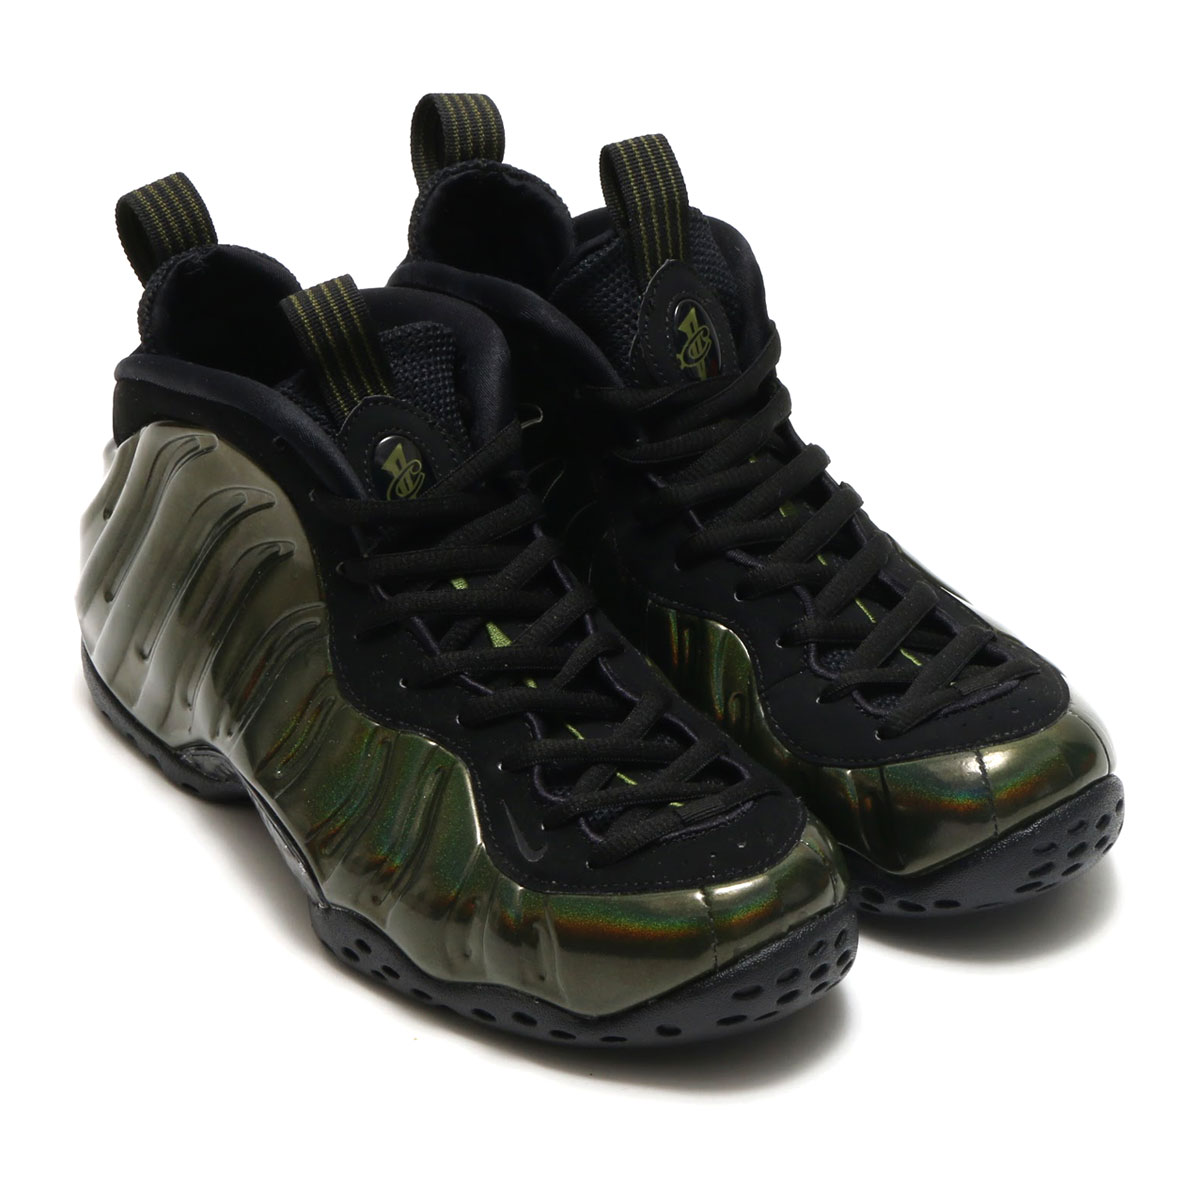 8719d6dba00 NIKE AIR FOAMPOSITE ONE (ナイキエアフォームポジット 1) (LEGION GREEN BLACK-BLACK)